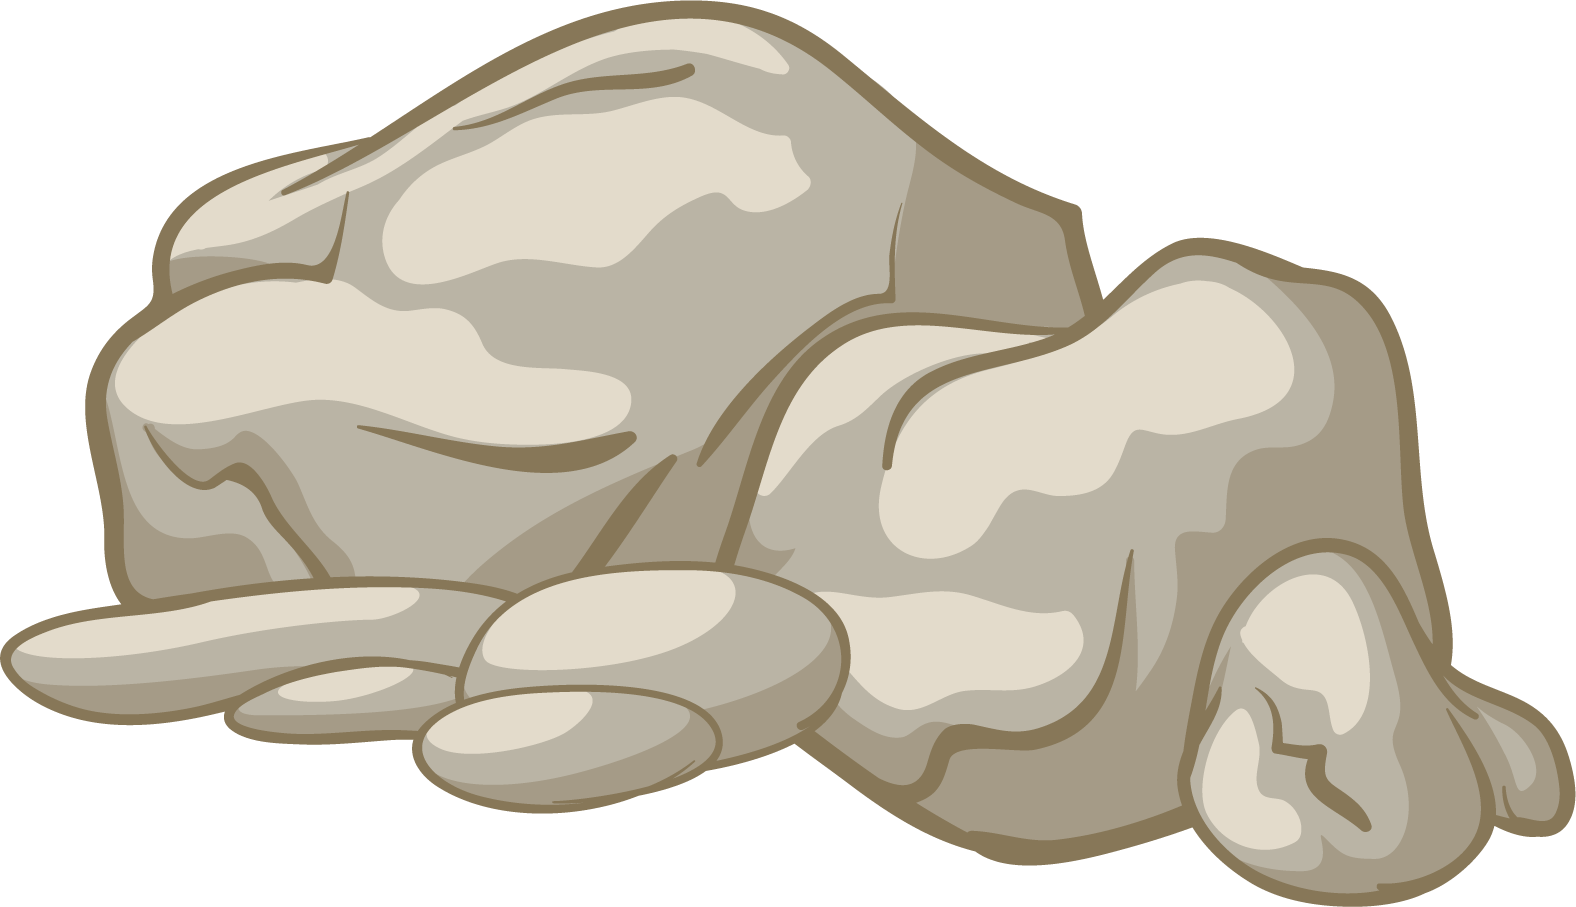 Rock clipart ground.